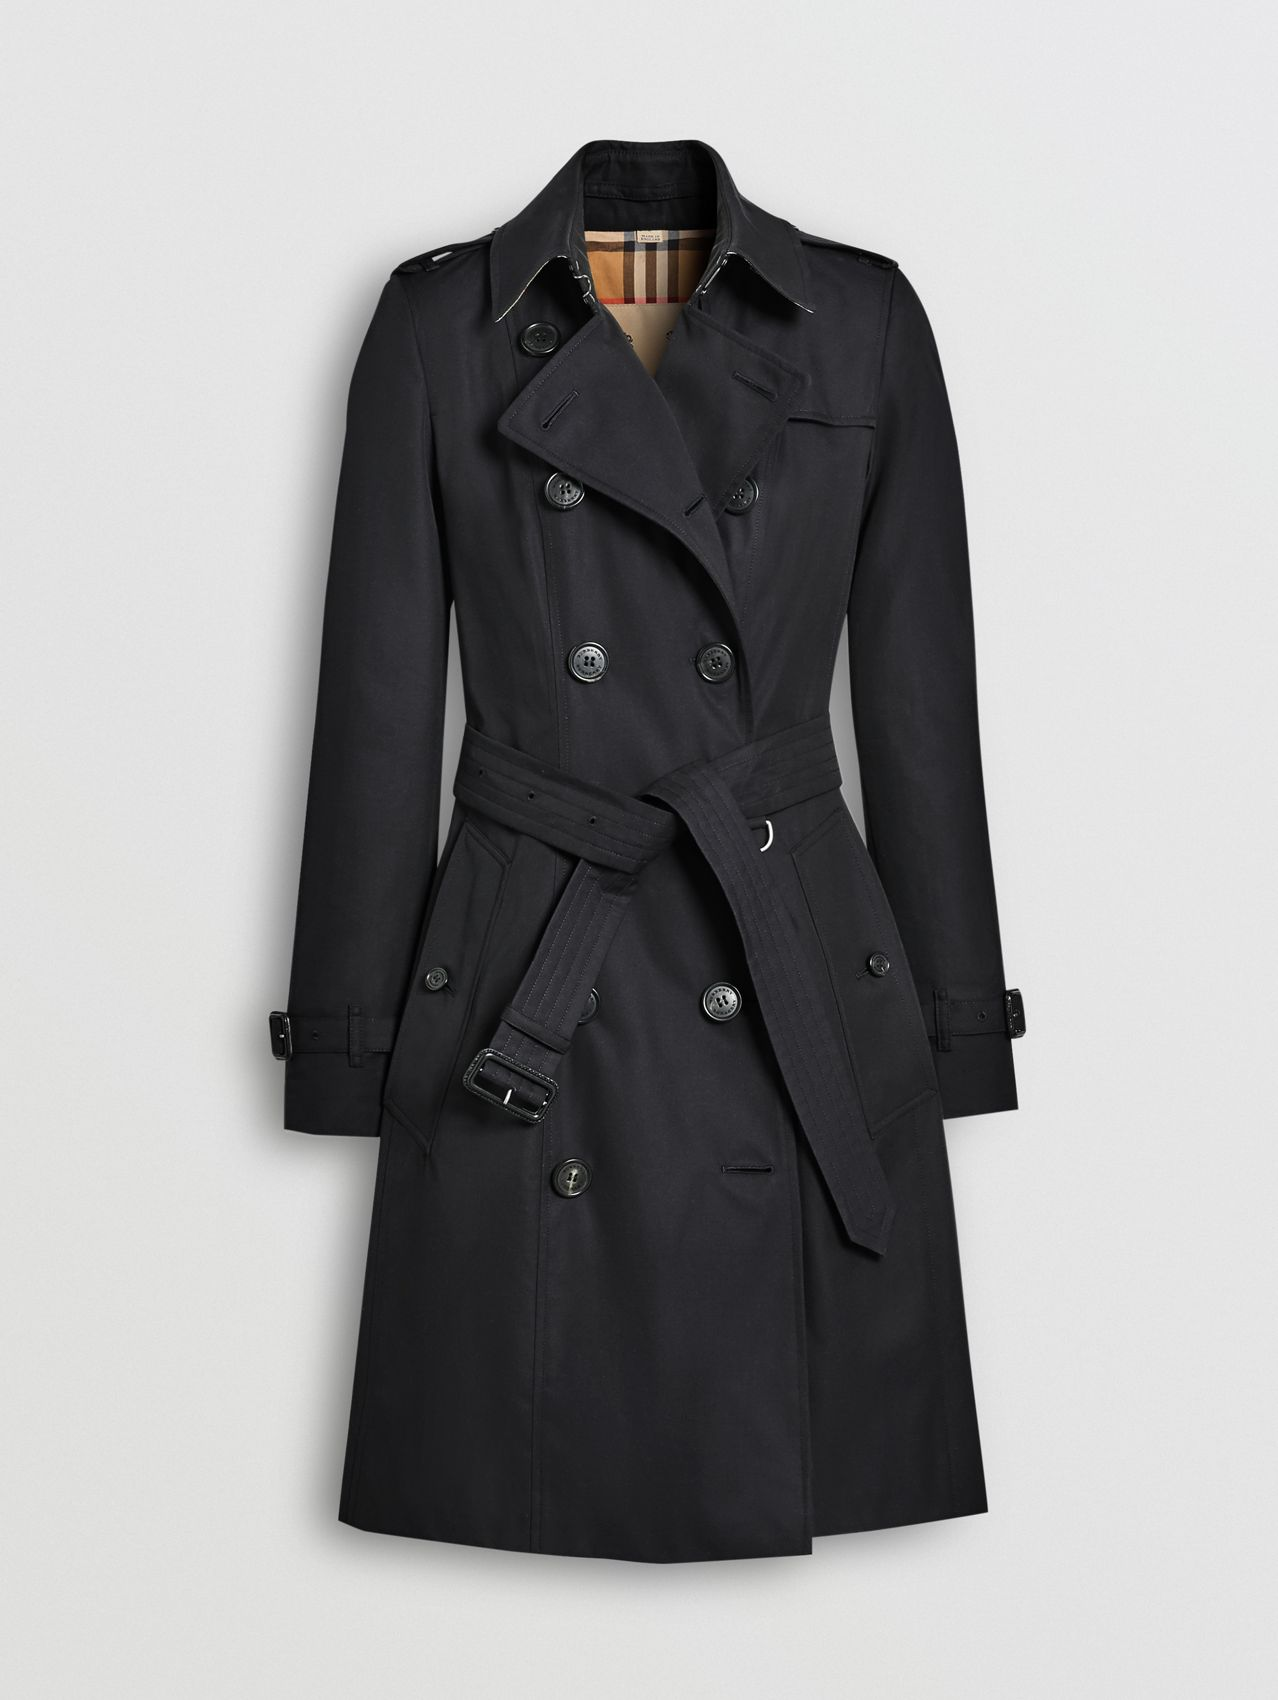 Trench coat Heritage Chelsea de longitud media (Medianoche)